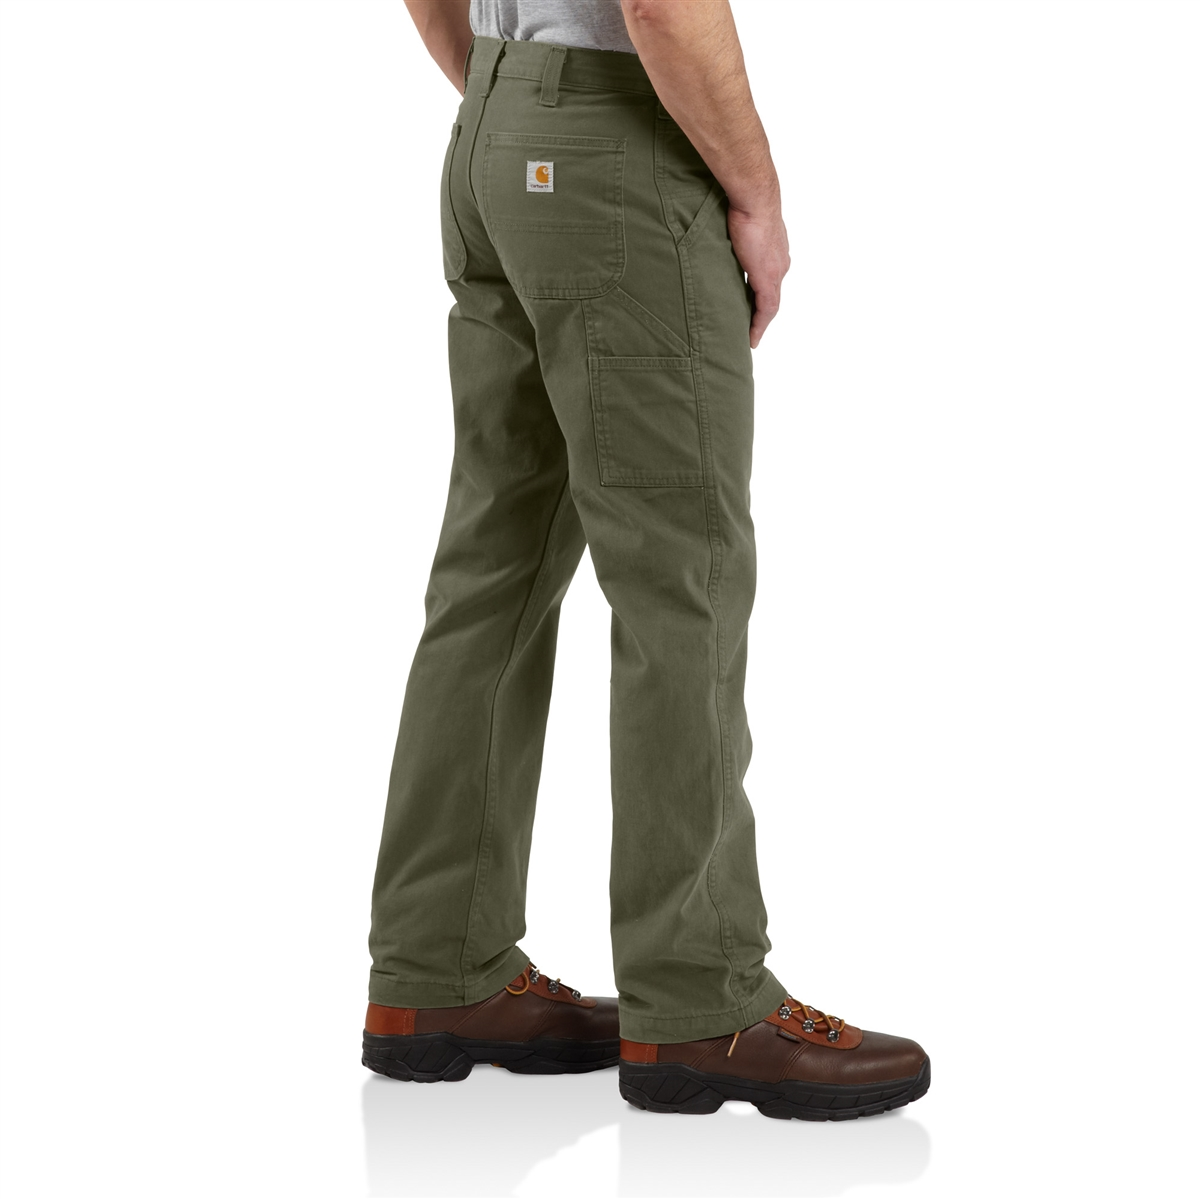 Carhartt Mens Relaxed Fit Washed Twill Dungaree Pant